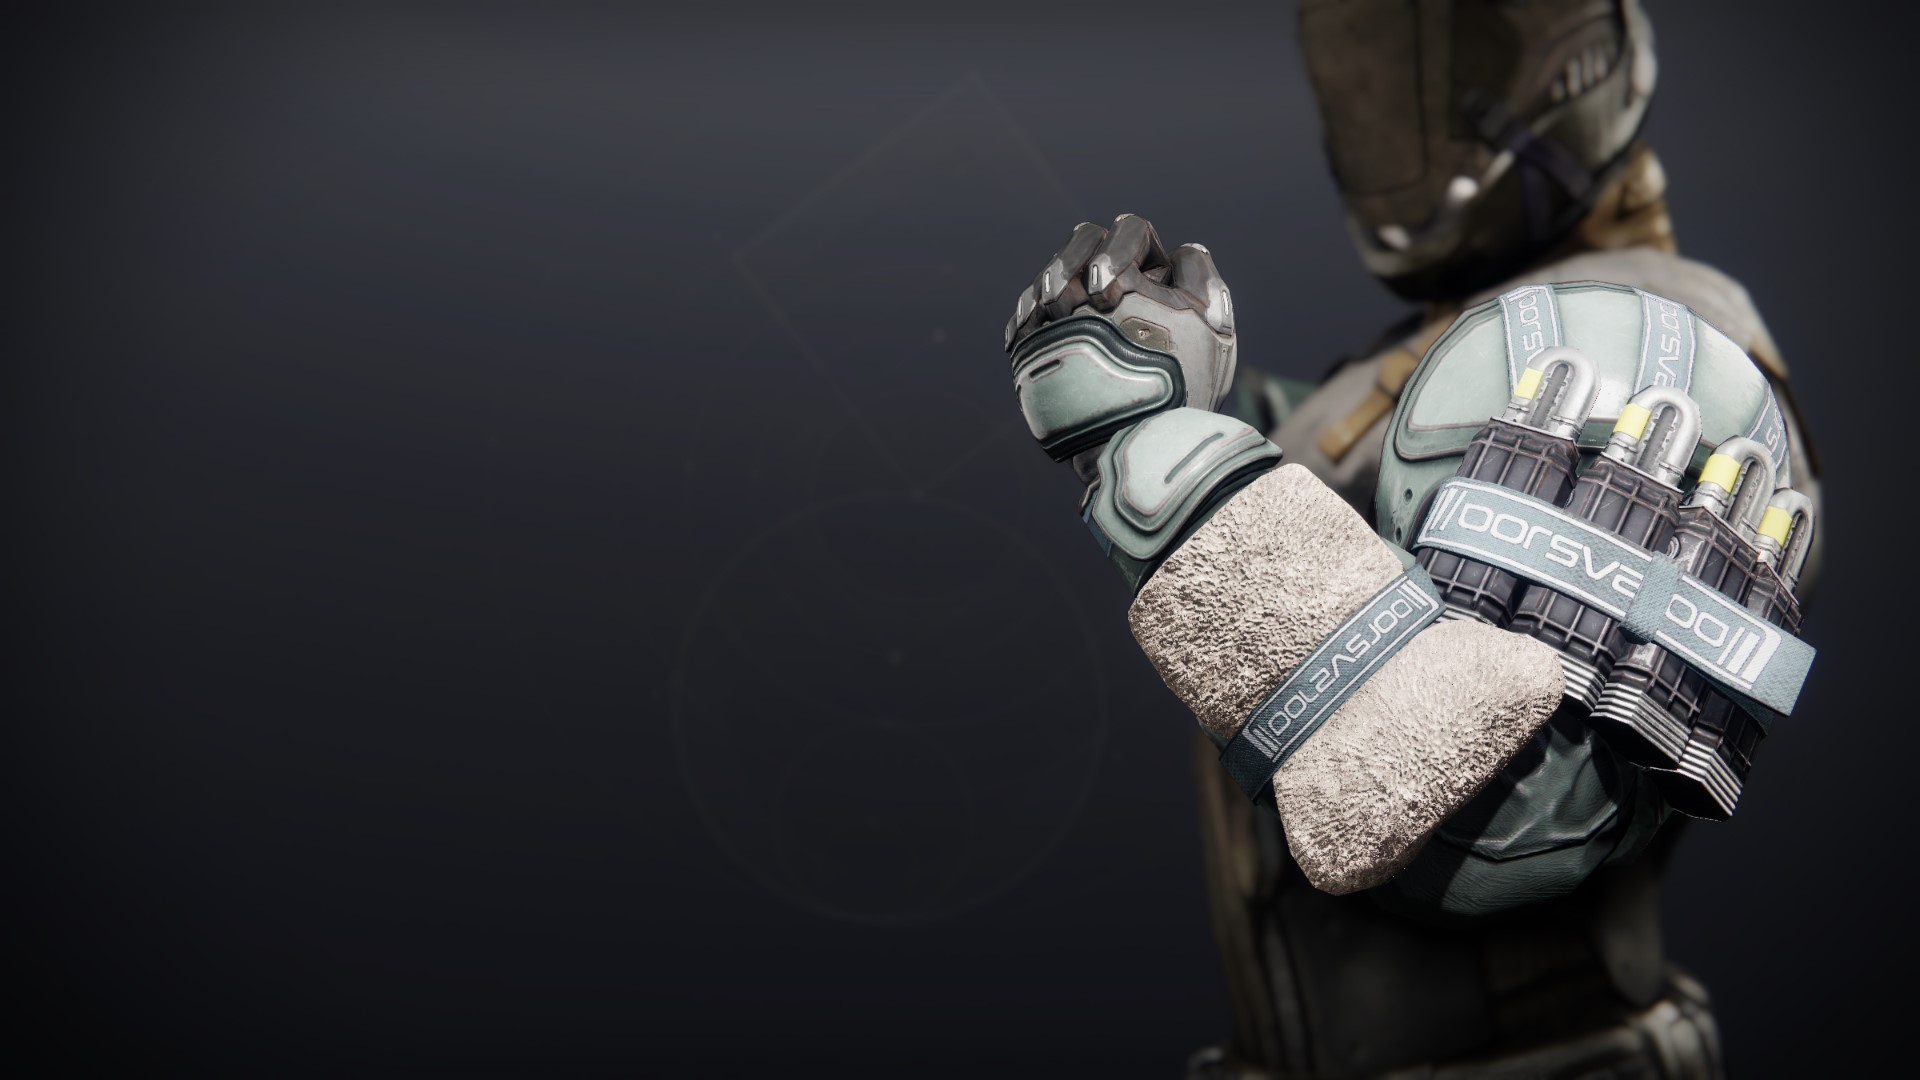 An in-game render of the Crystocrene Gauntlets.